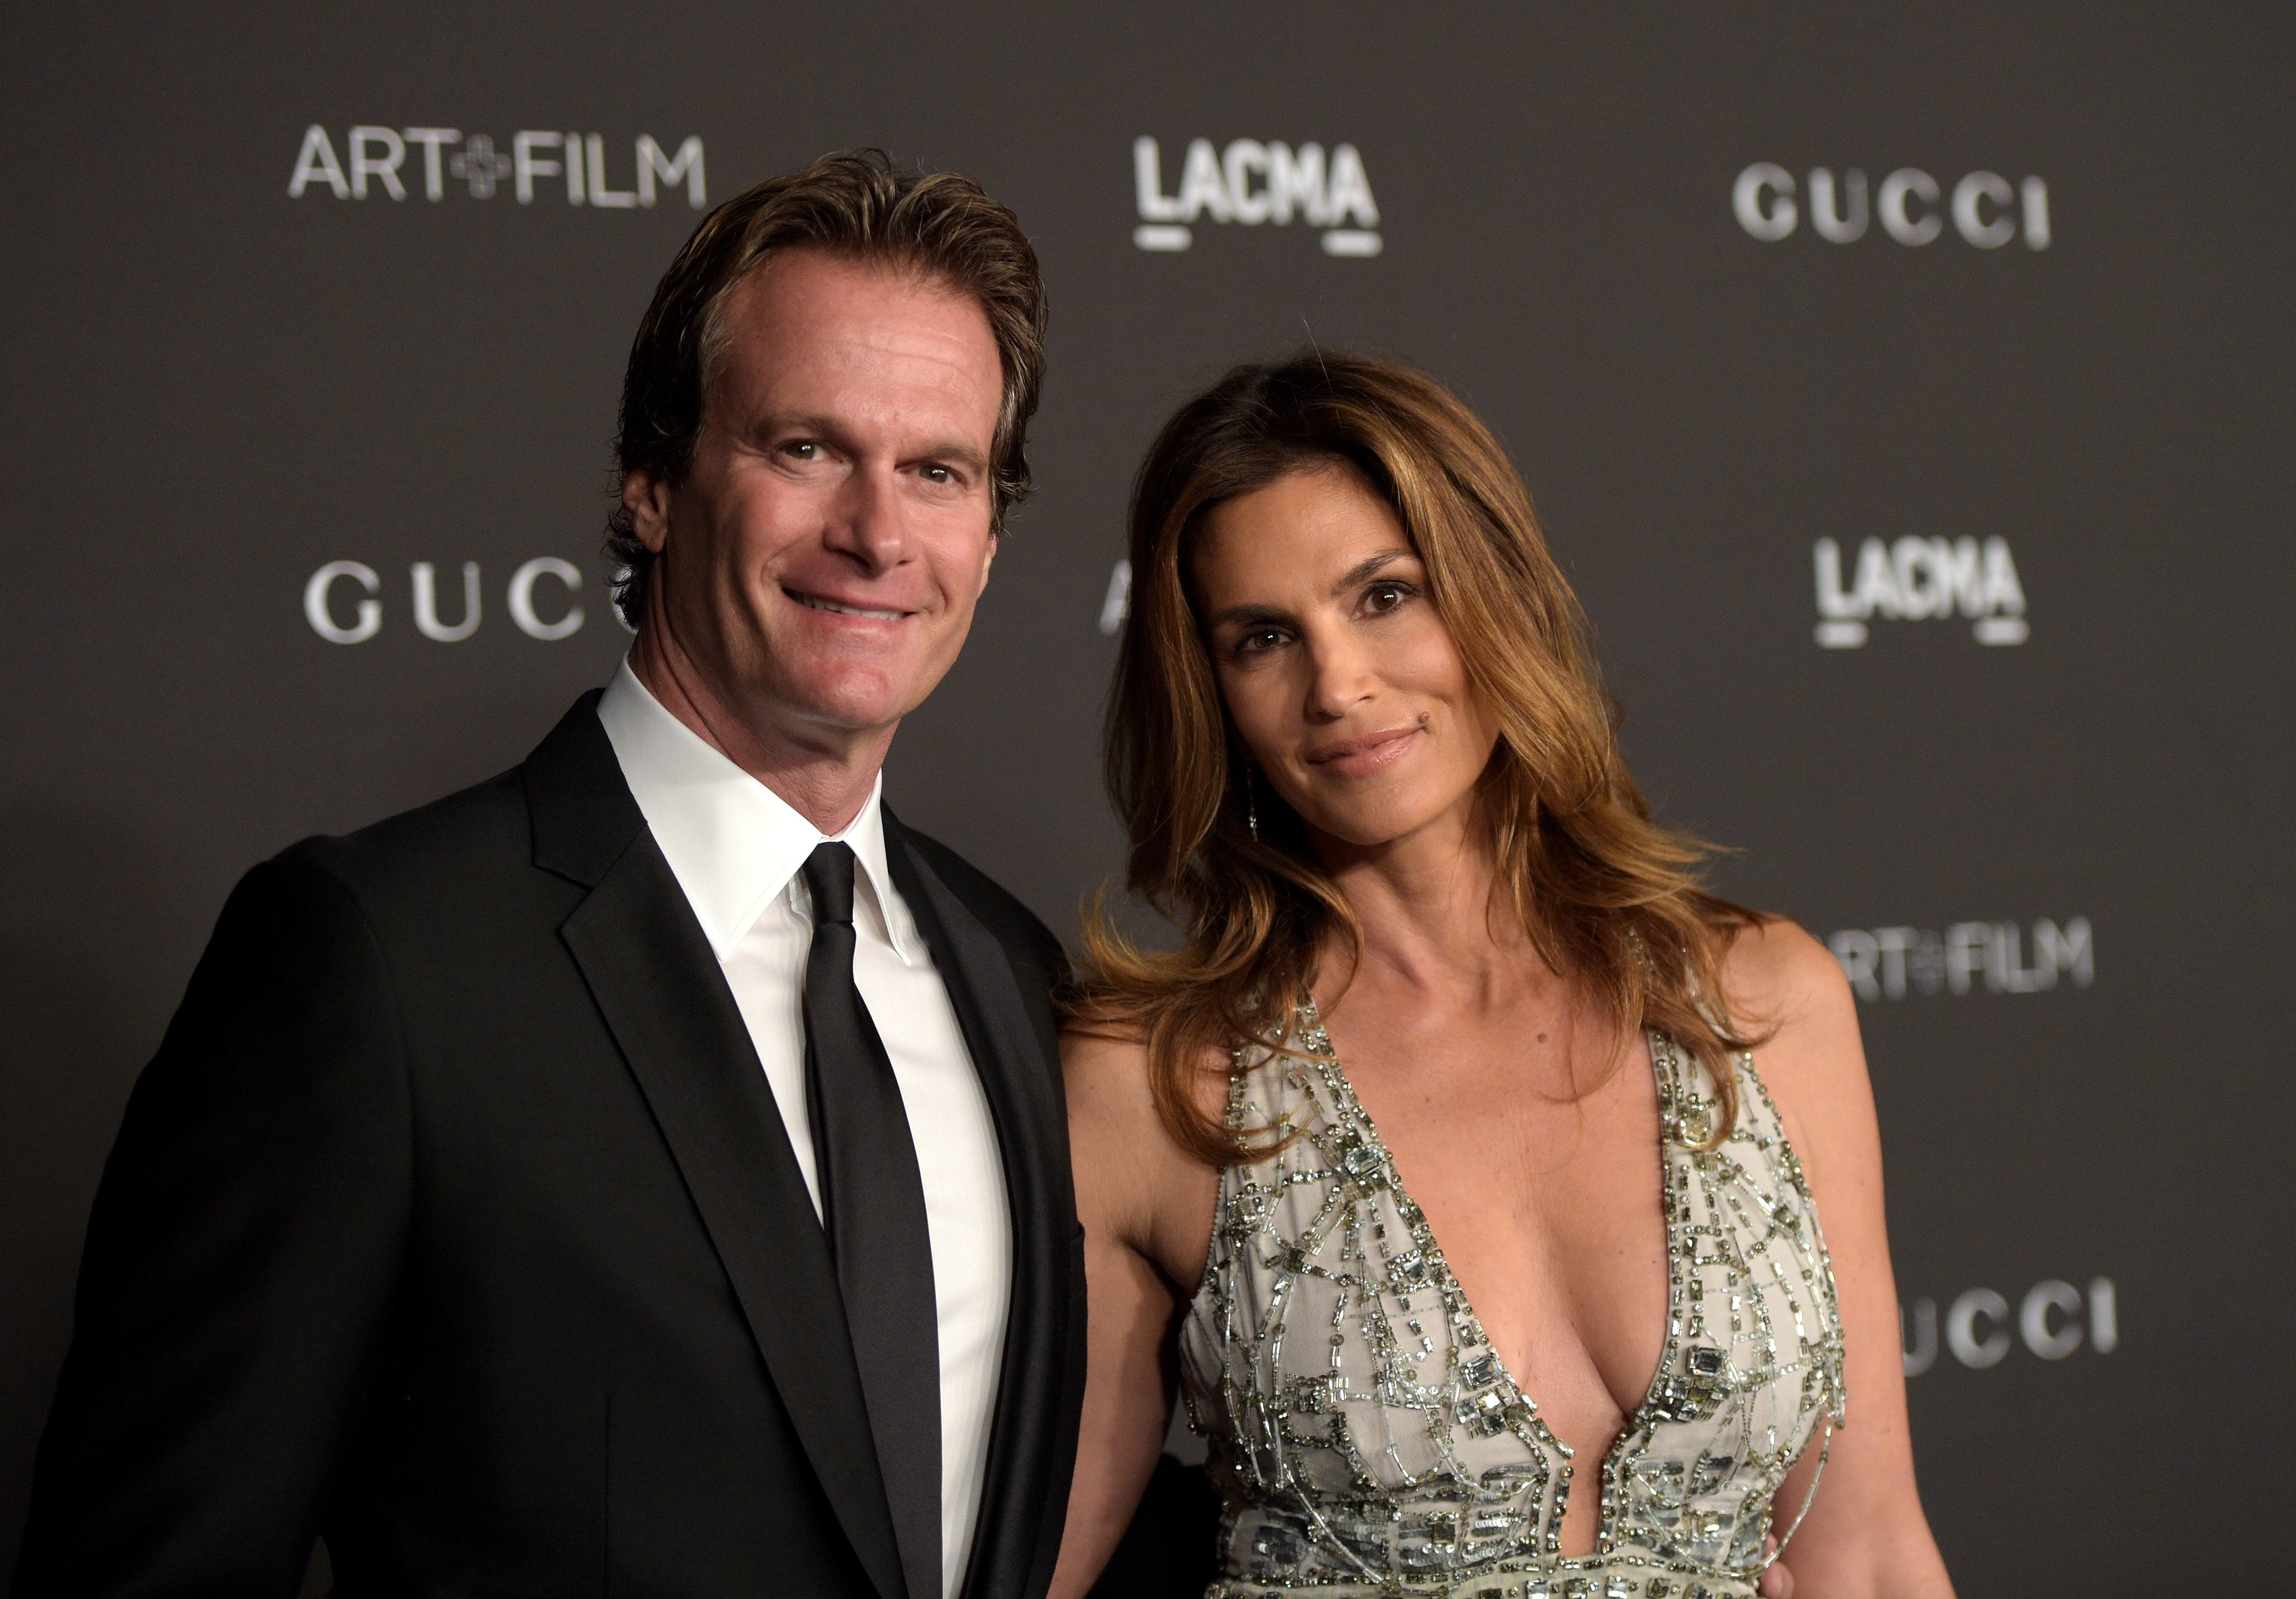 Cindy Crawford and her husband Rande Gerber attend the 2014 LACMA Art + Film Gala at LACMA on November 1, 2014 in Los Angeles, California | Photo: Getty Images